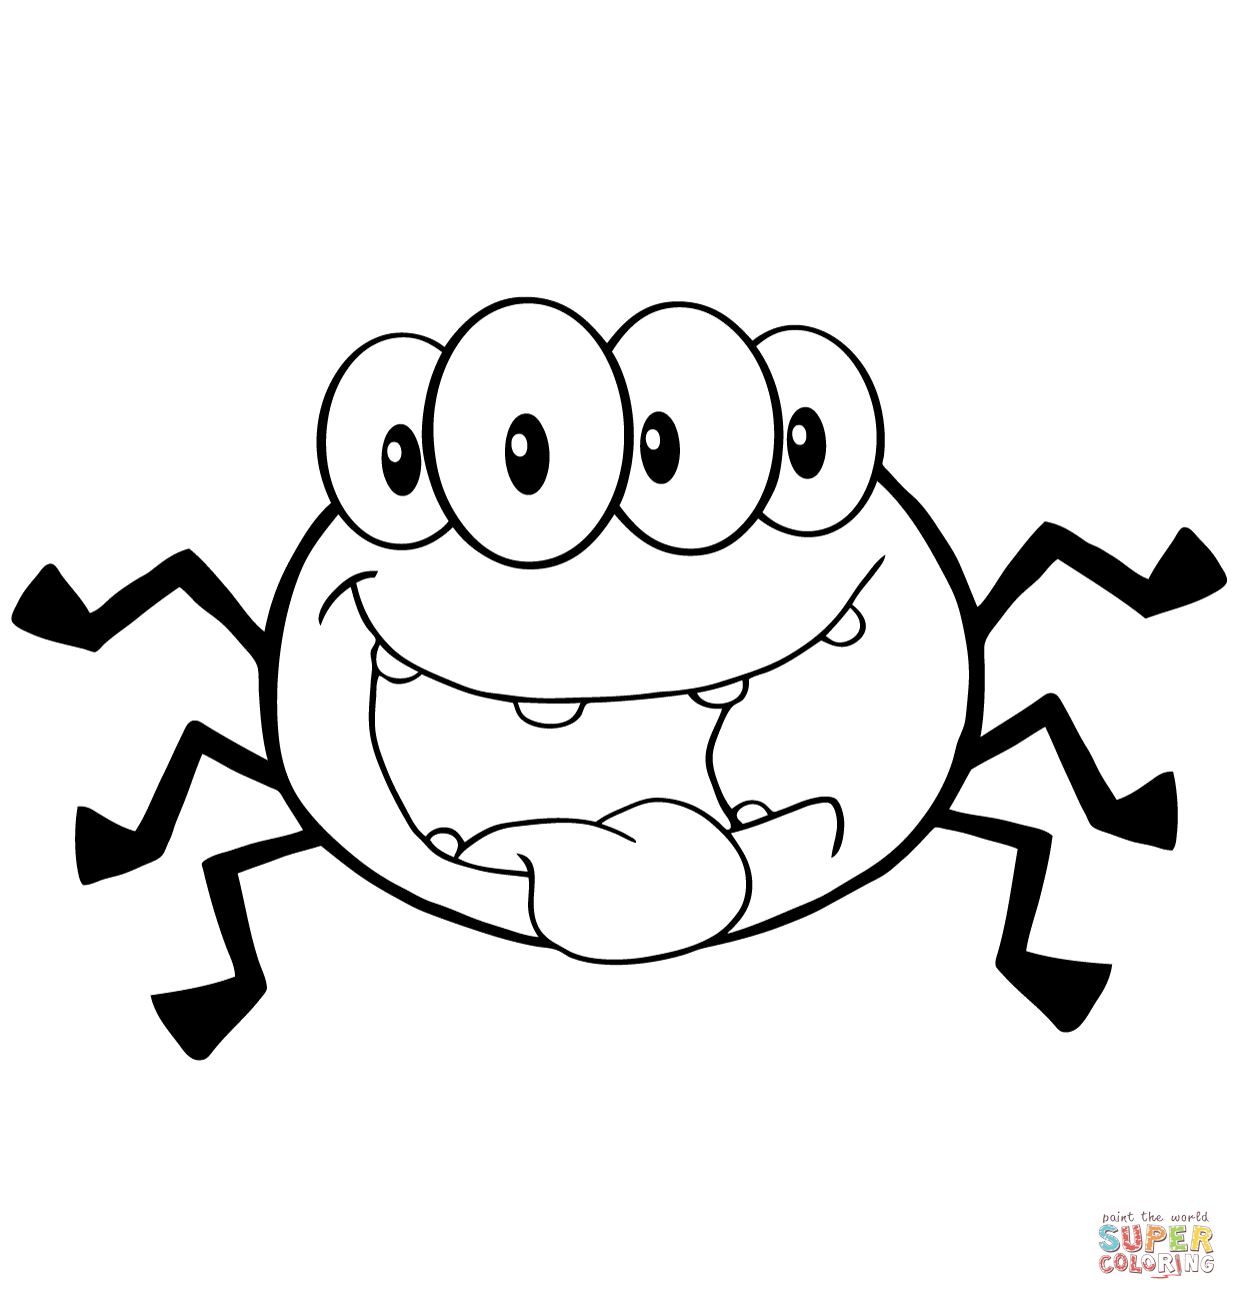 incy wincy spider colouring sheets incy wincy spider coloring pages print coloring sheets incy colouring wincy spider